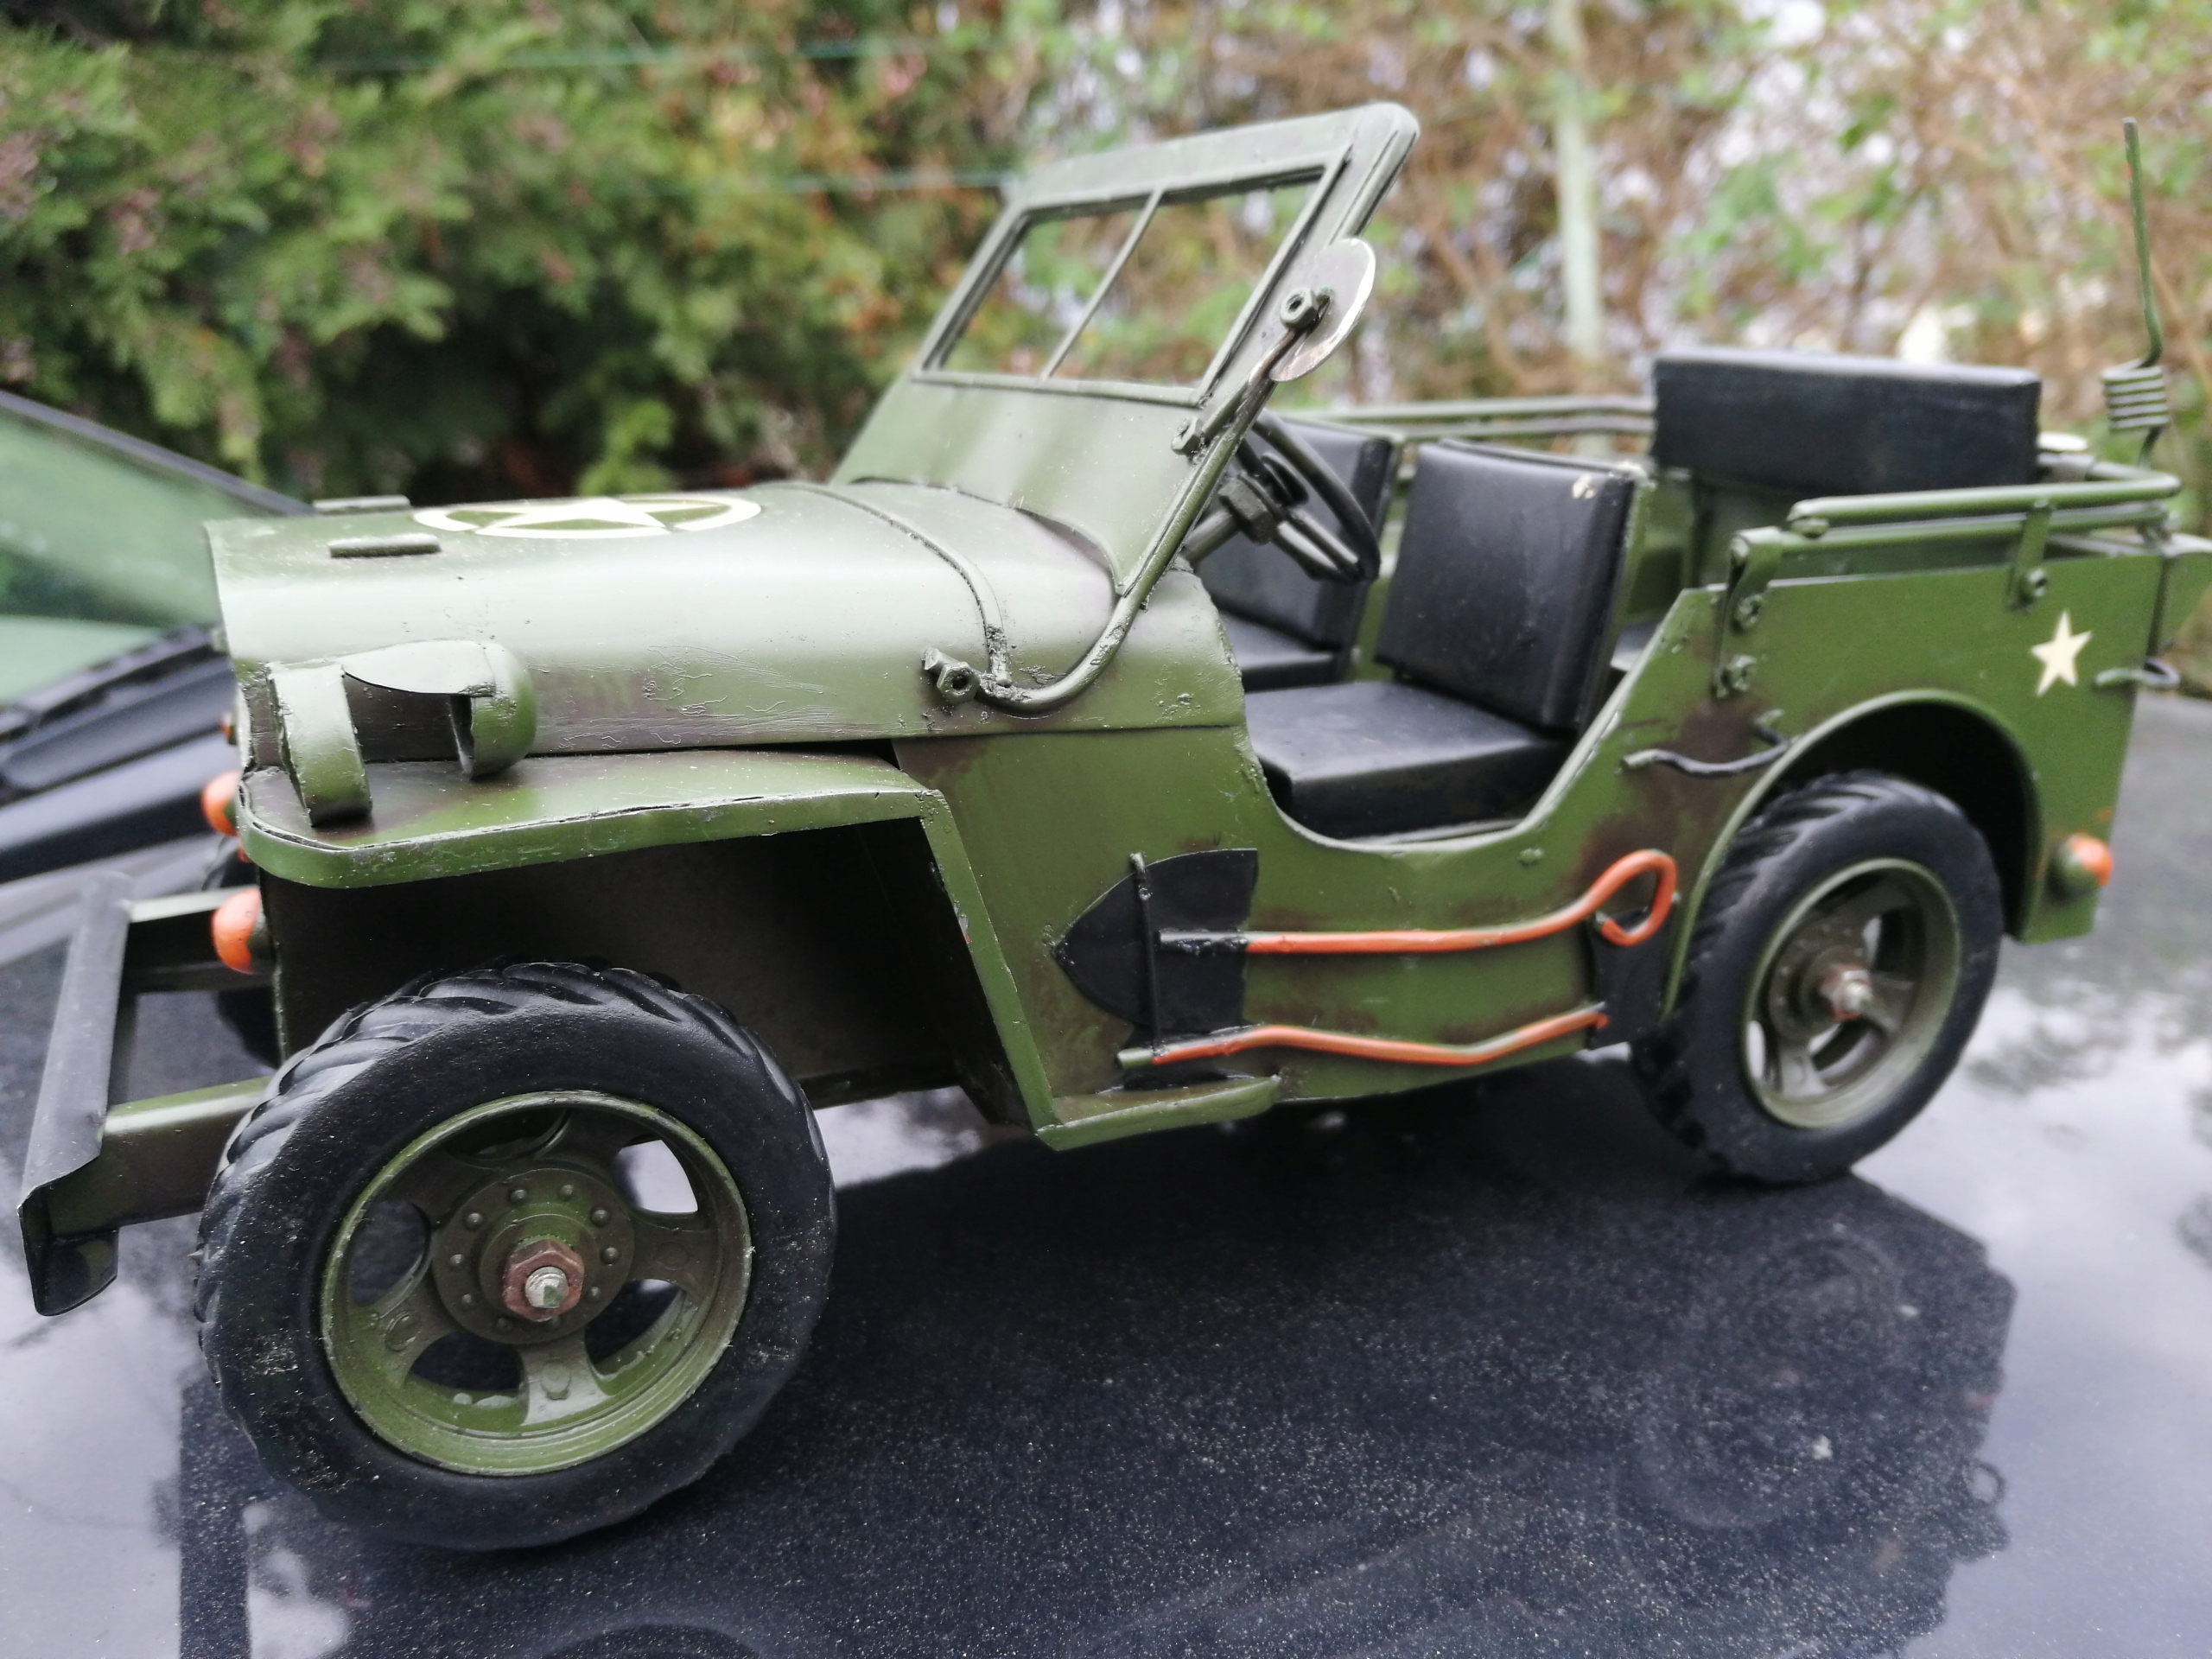 Jeep willys 1941r. 30cm model